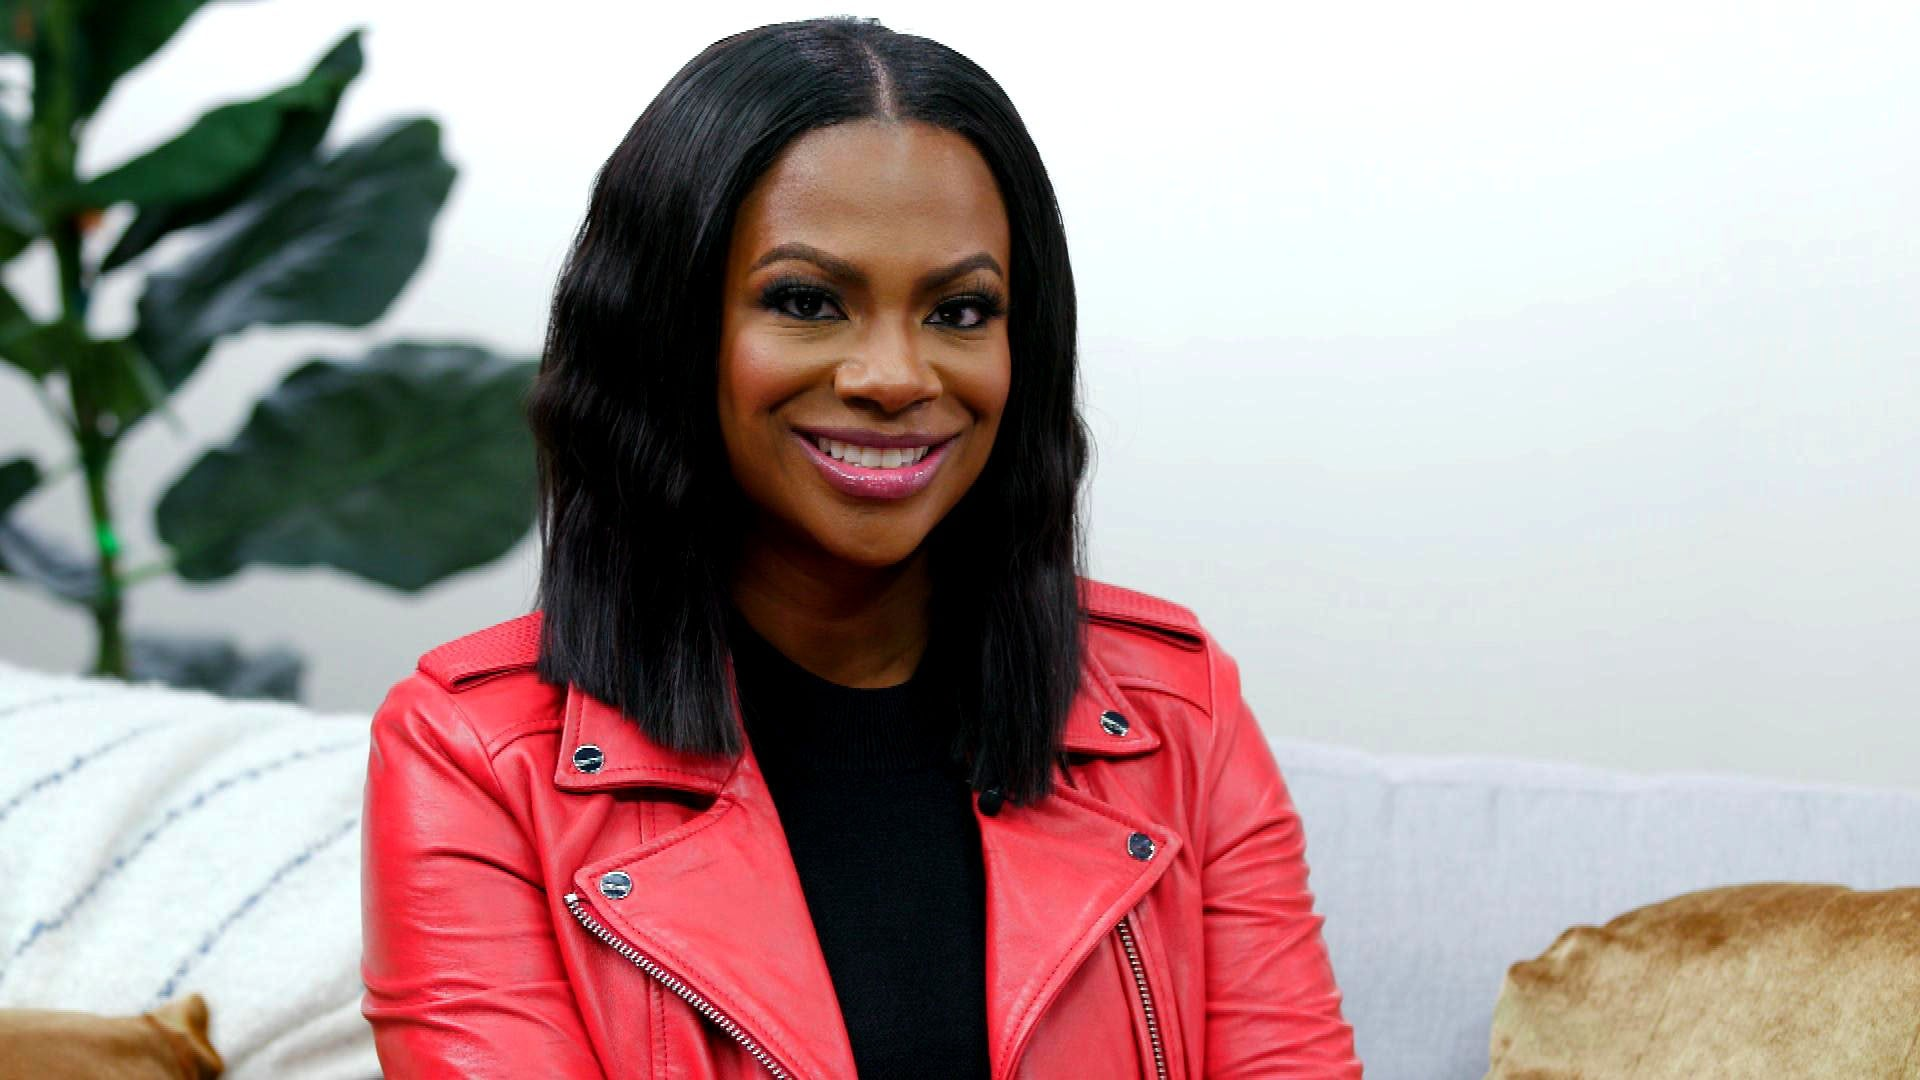 Kandi Burruss Shows Off A New Look In This Latest Dress